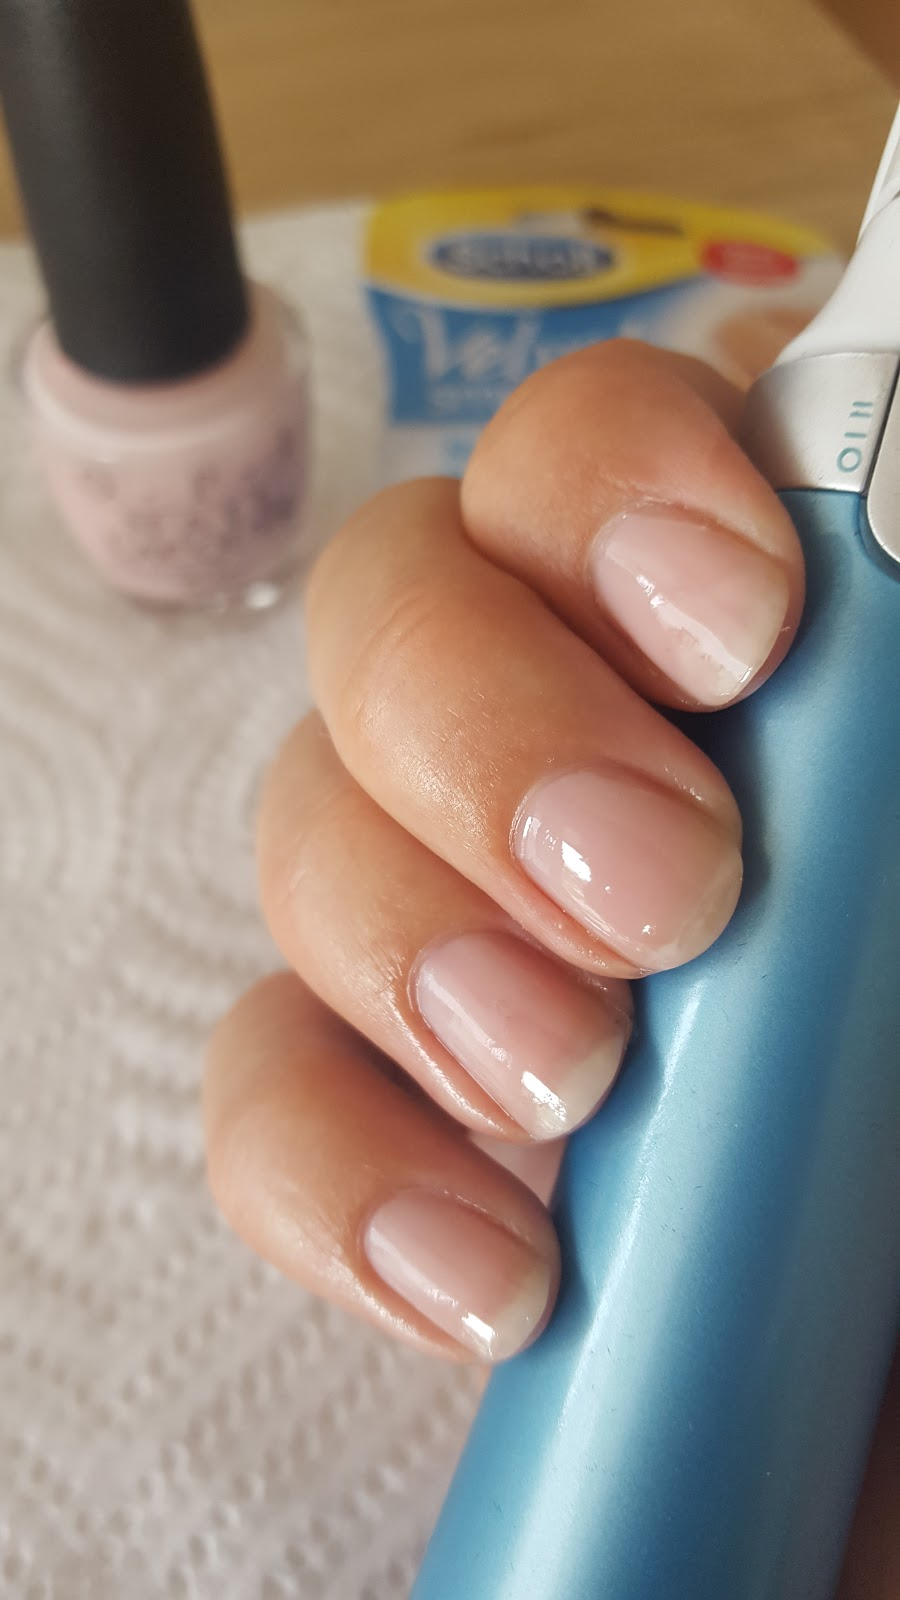 Scholl - Velvet Smooth Electronic Nail Care System - KatyStyle